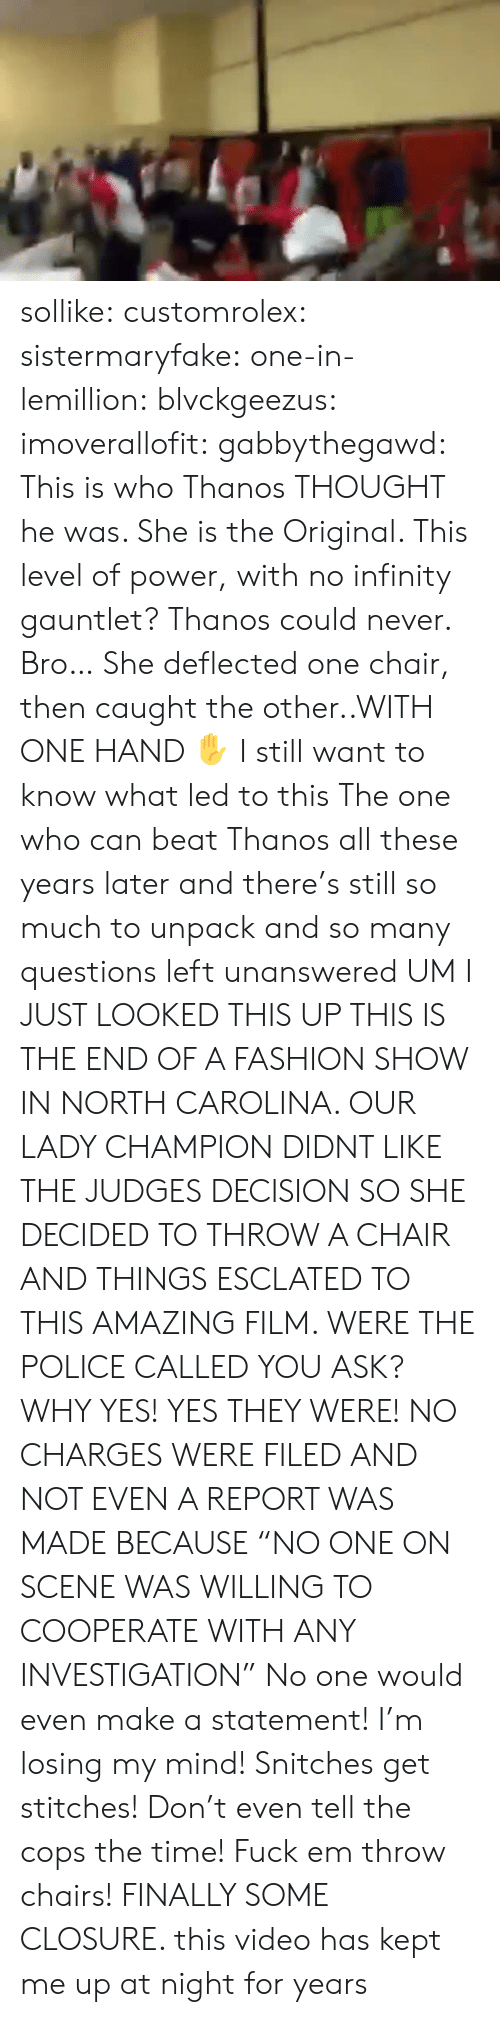 "Judges: sollike: customrolex:   sistermaryfake:  one-in-lemillion:  blvckgeezus:  imoverallofit:   gabbythegawd: This is who Thanos THOUGHT he was. She is the Original. This level of power, with no infinity gauntlet? Thanos could never.  Bro… She deflected one chair, then caught the other..WITH ONE HAND ✋   I still want to know what led to this    The one who can beat Thanos   all these years later and there's still so much to unpack and so many questions left unanswered   UM I JUST LOOKED THIS UP  THIS IS THE END OF A FASHION SHOW IN NORTH CAROLINA. OUR LADY CHAMPION DIDNT LIKE THE JUDGES DECISION SO SHE DECIDED TO THROW A CHAIR AND THINGS ESCLATED TO THIS AMAZING FILM.  WERE THE POLICE CALLED YOU ASK? WHY YES! YES THEY WERE!  NO CHARGES WERE FILED AND NOT EVEN A REPORT WAS MADE BECAUSE ""NO ONE ON SCENE WAS WILLING TO COOPERATE WITH ANY INVESTIGATION""  No one would even make a statement! I'm losing my mind! Snitches get stitches! Don't even tell the cops the time! Fuck em throw chairs!   FINALLY SOME CLOSURE. this video has kept me up at night for years"